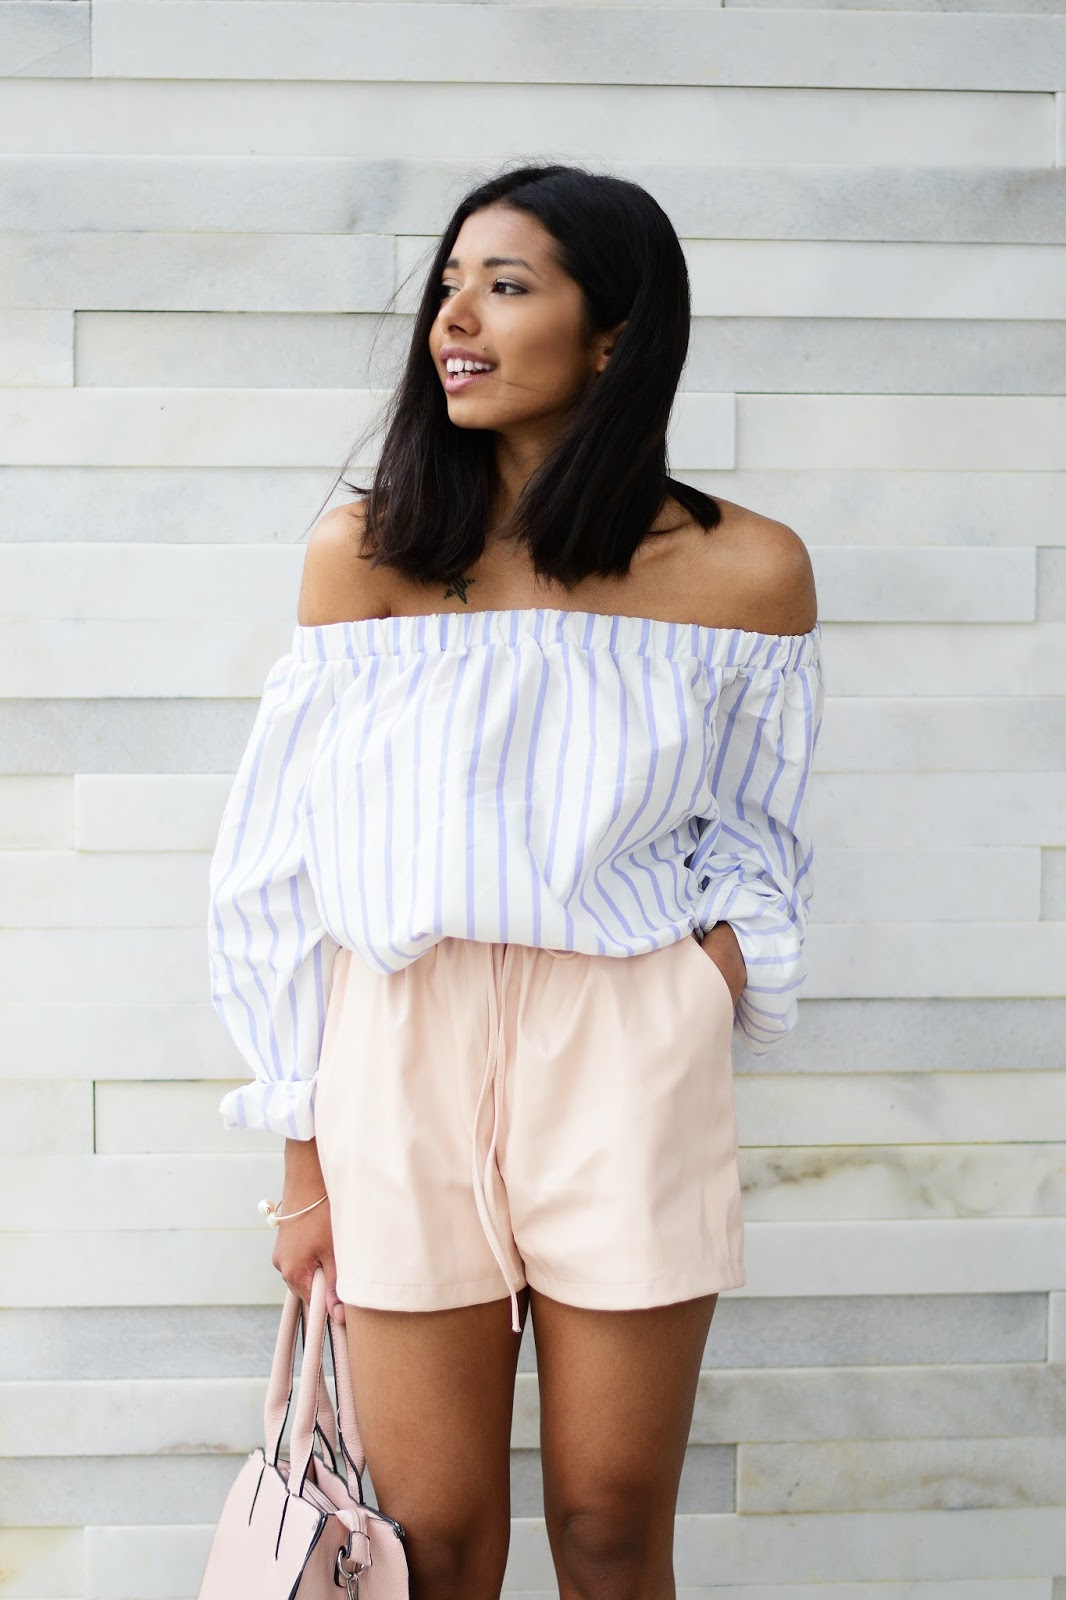 off-shoulder top outfit